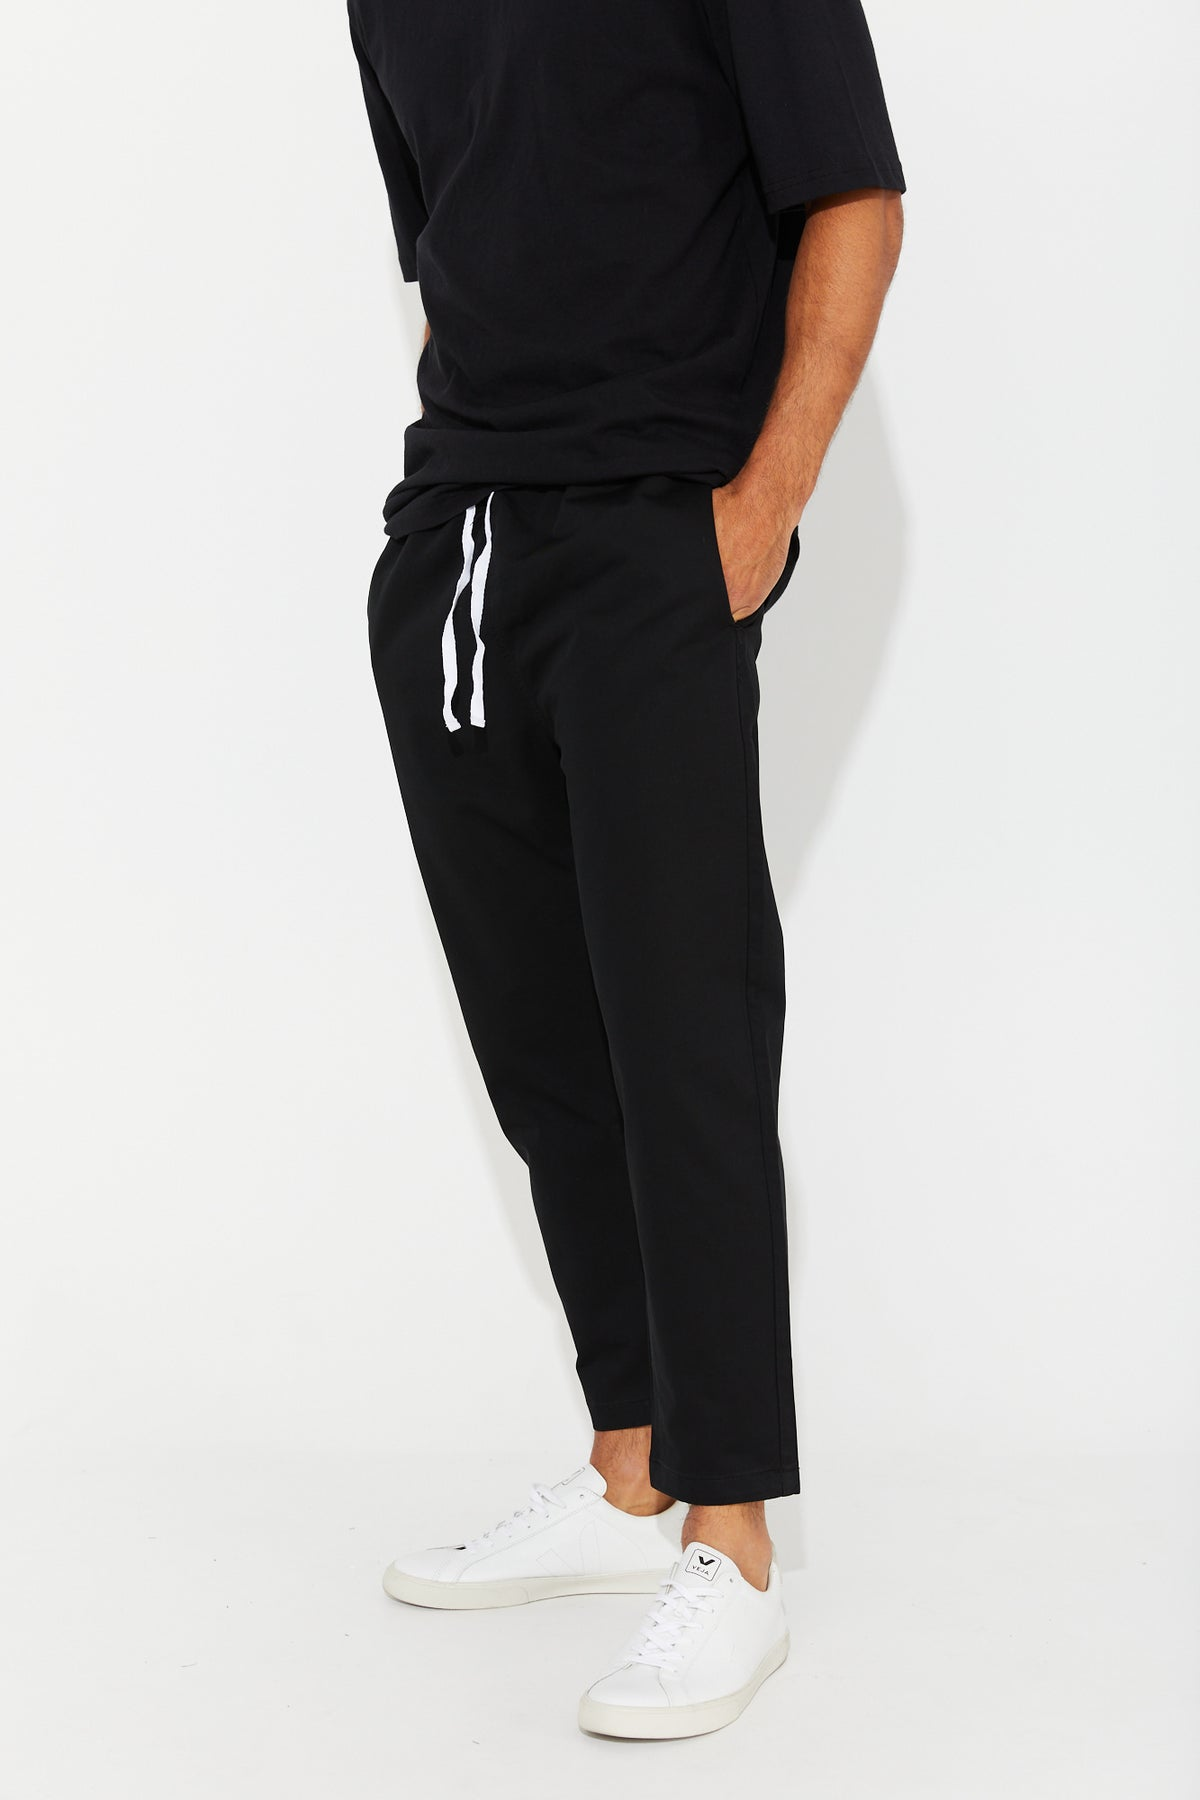 NTH Relaxed Jogger Black